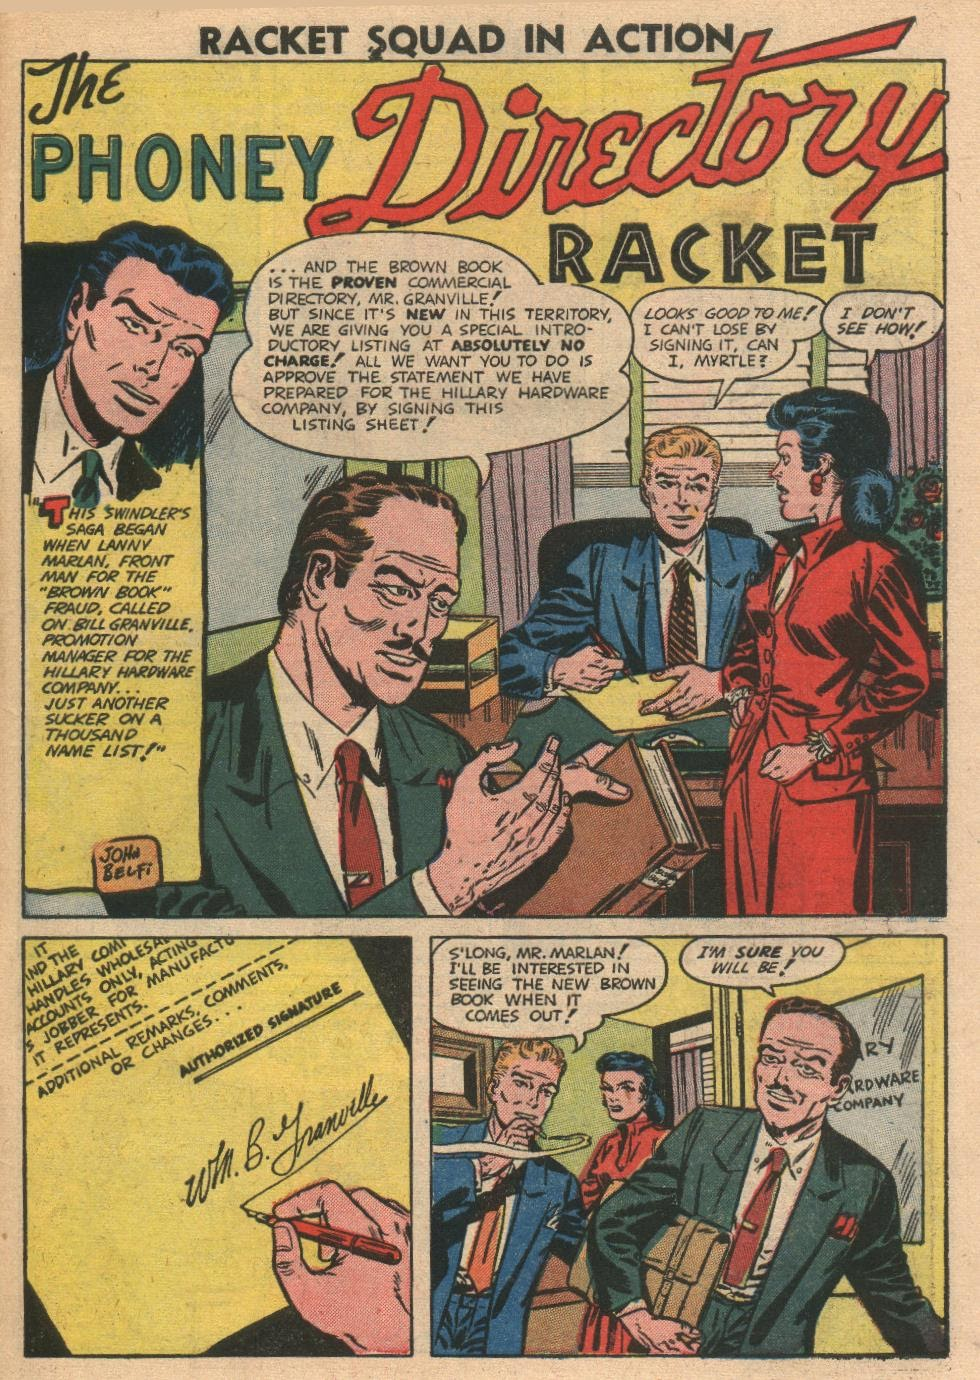 Read online Racket Squad in Action comic -  Issue #2 - 31